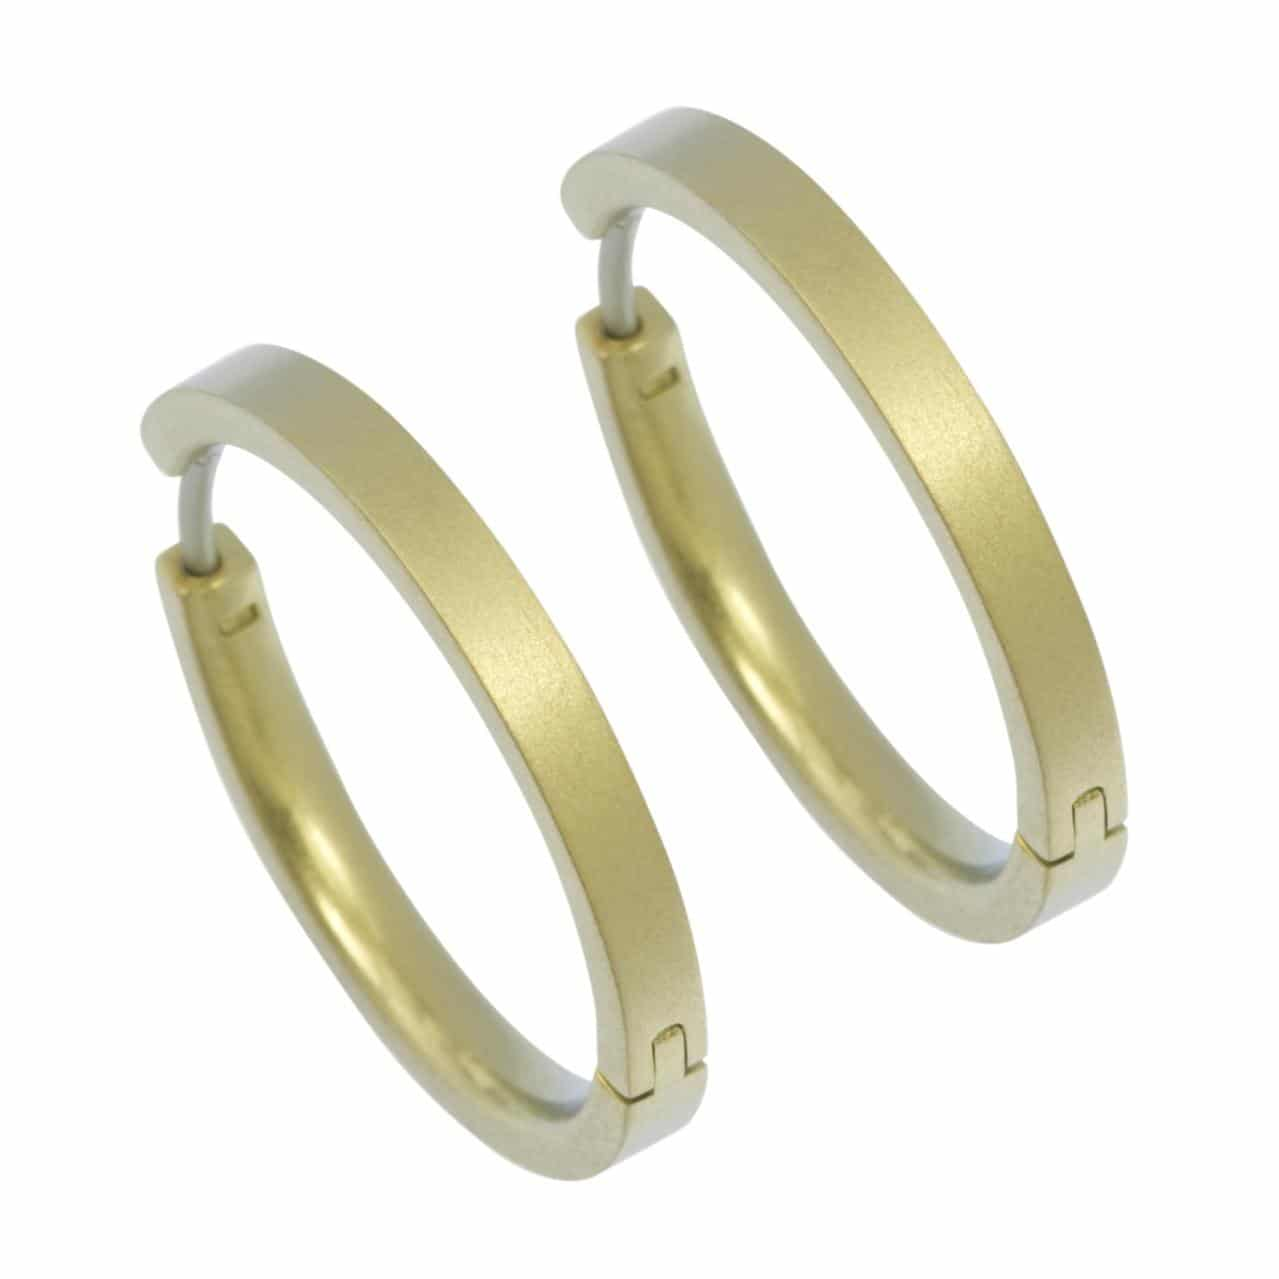 Ti2 Titanium 24mm Diameter Hinged Hoop Earrings - Lemon Yellow